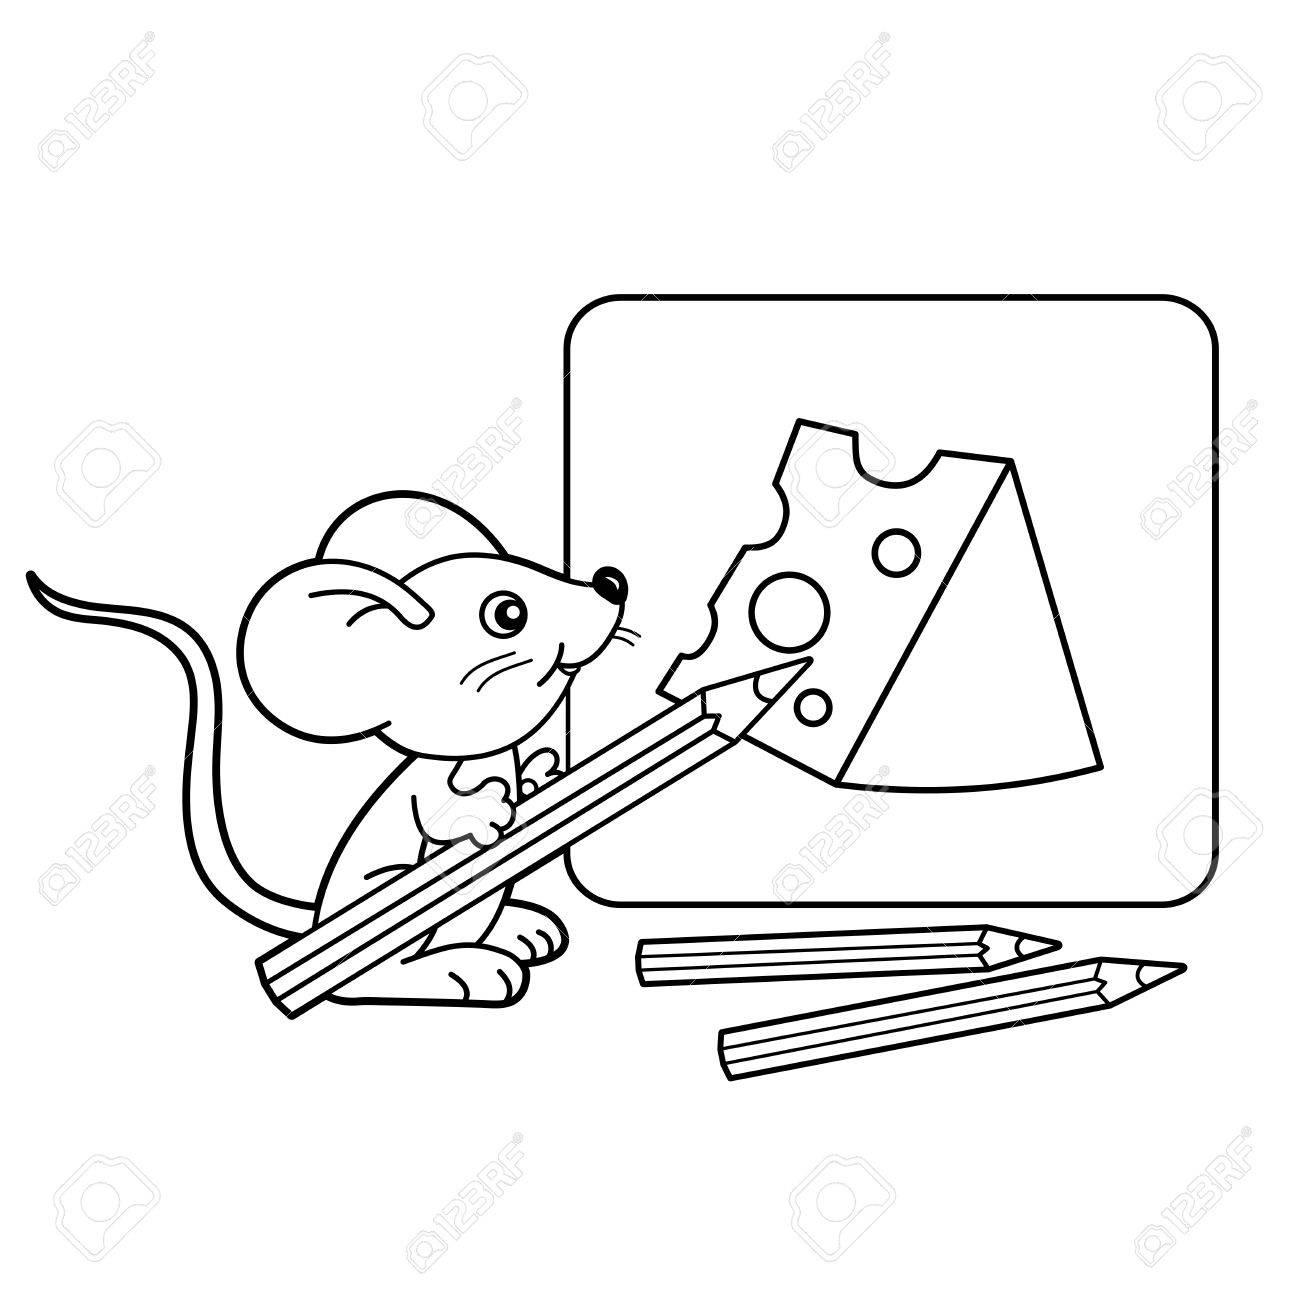 1300x1300 Coloring Page Outline Of Cartoon Little Mouse Pencils